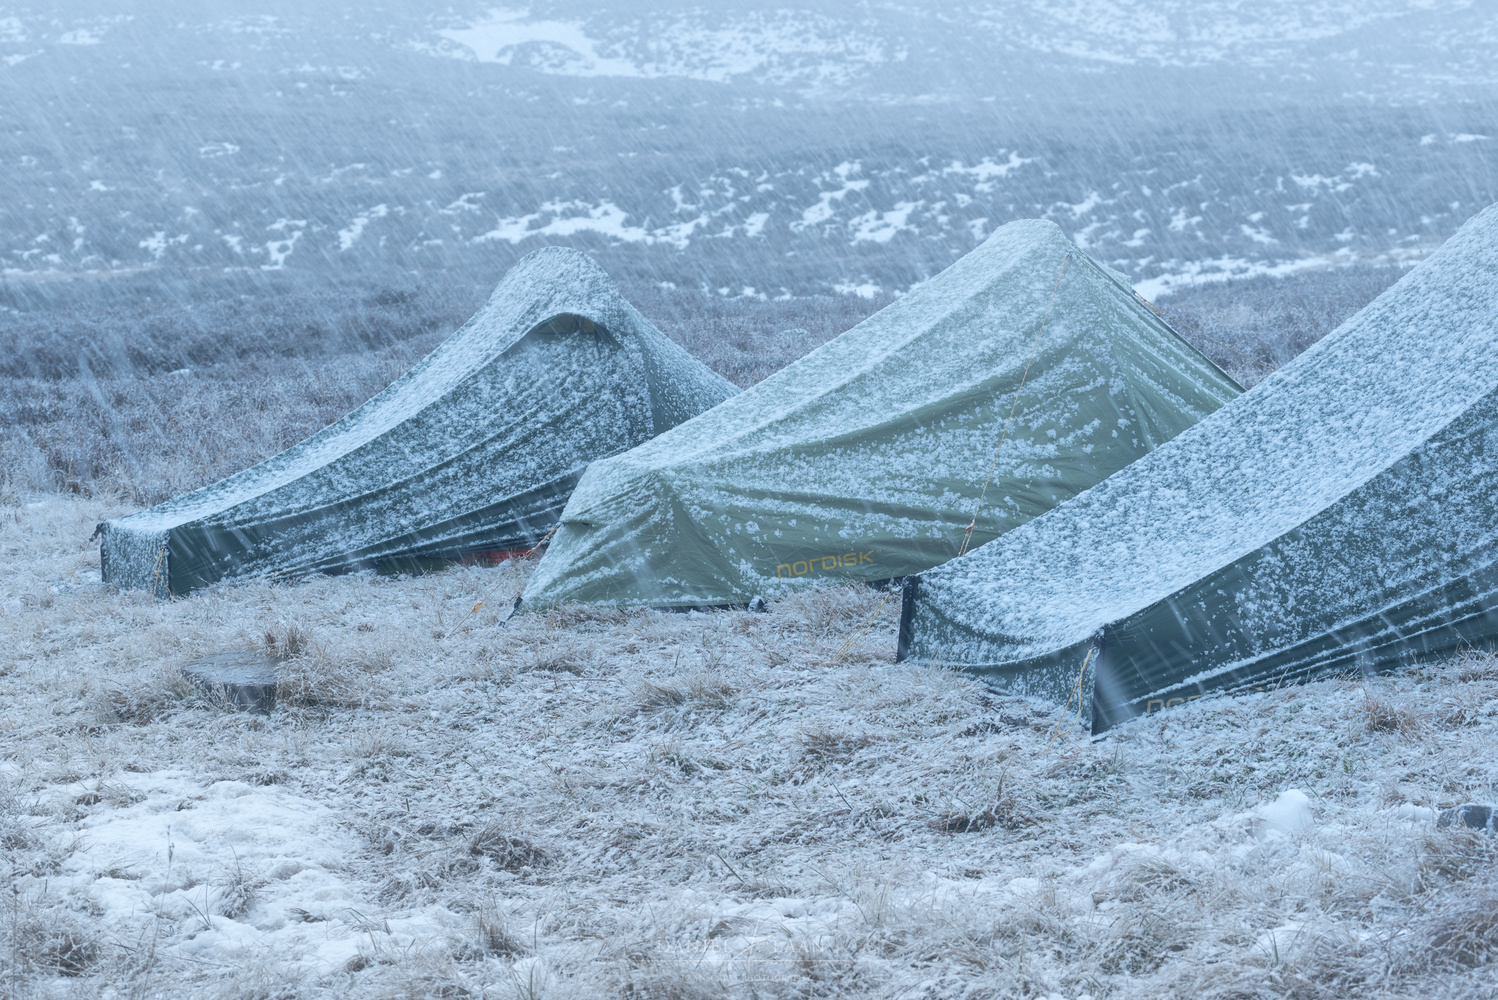 Nordisk tents in the snow.